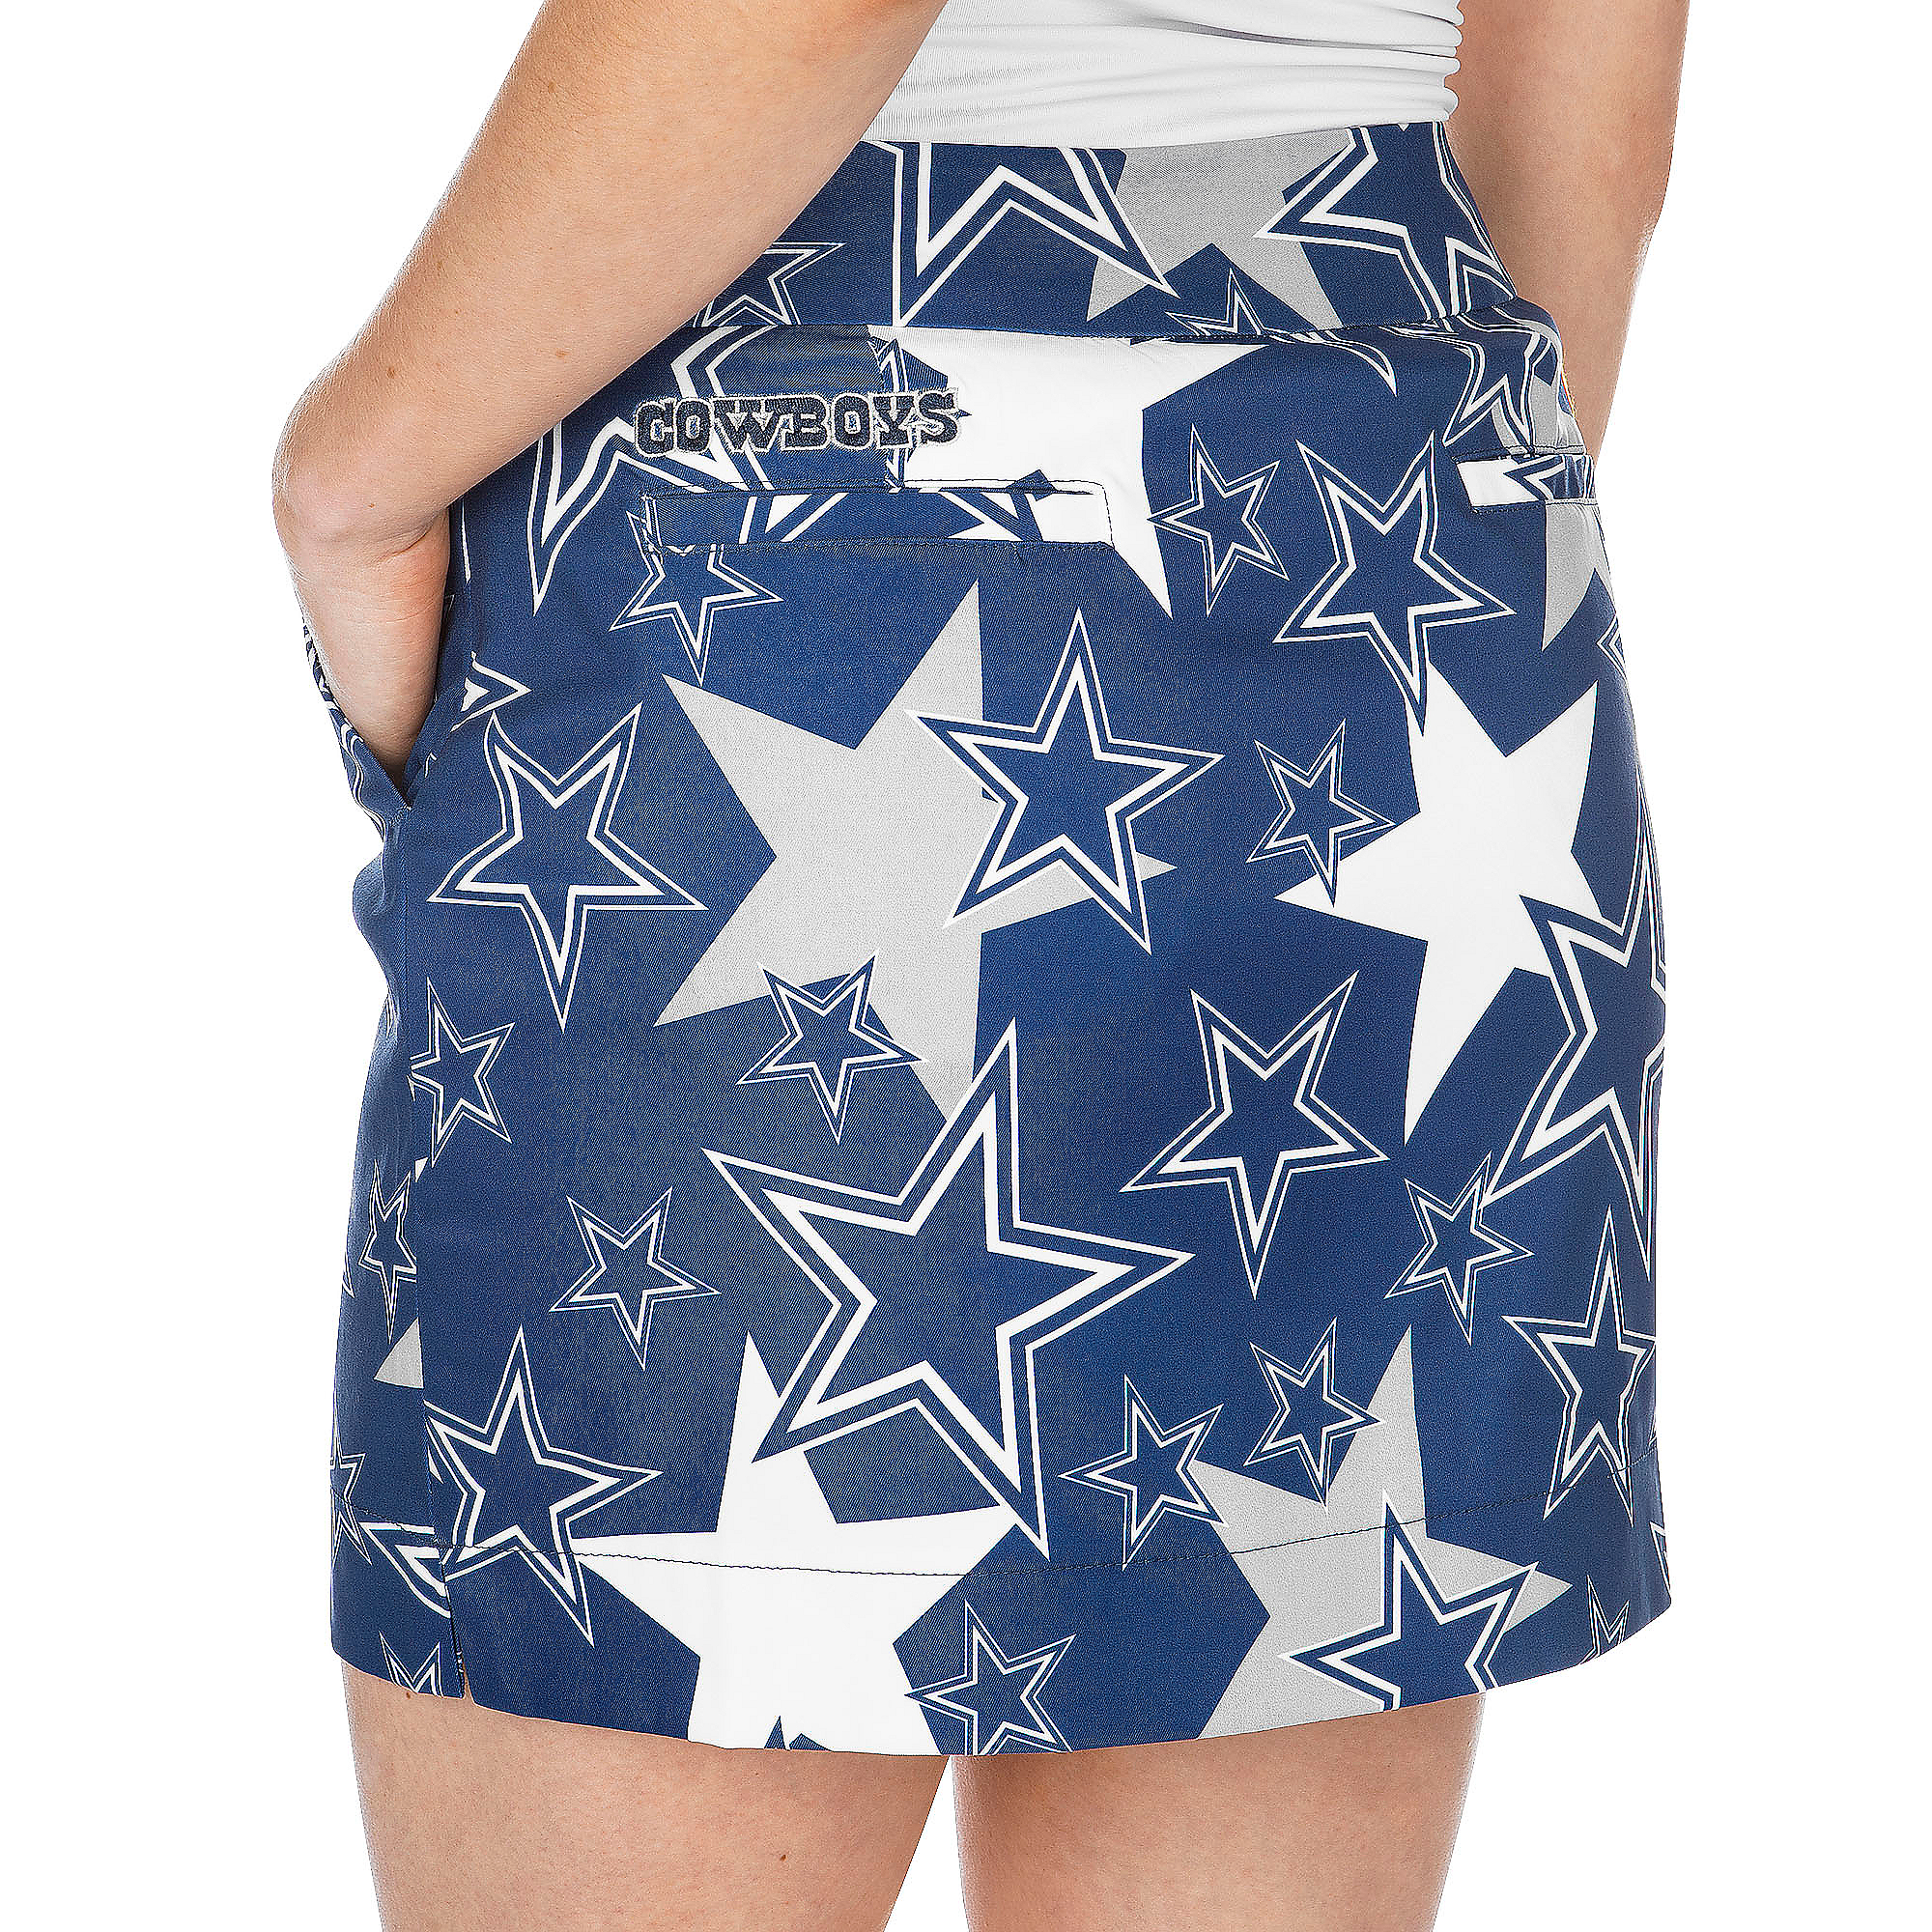 Dallas Cowboys Loudmouth Womens Star Stretch Tech Skirt ... d914bbc85